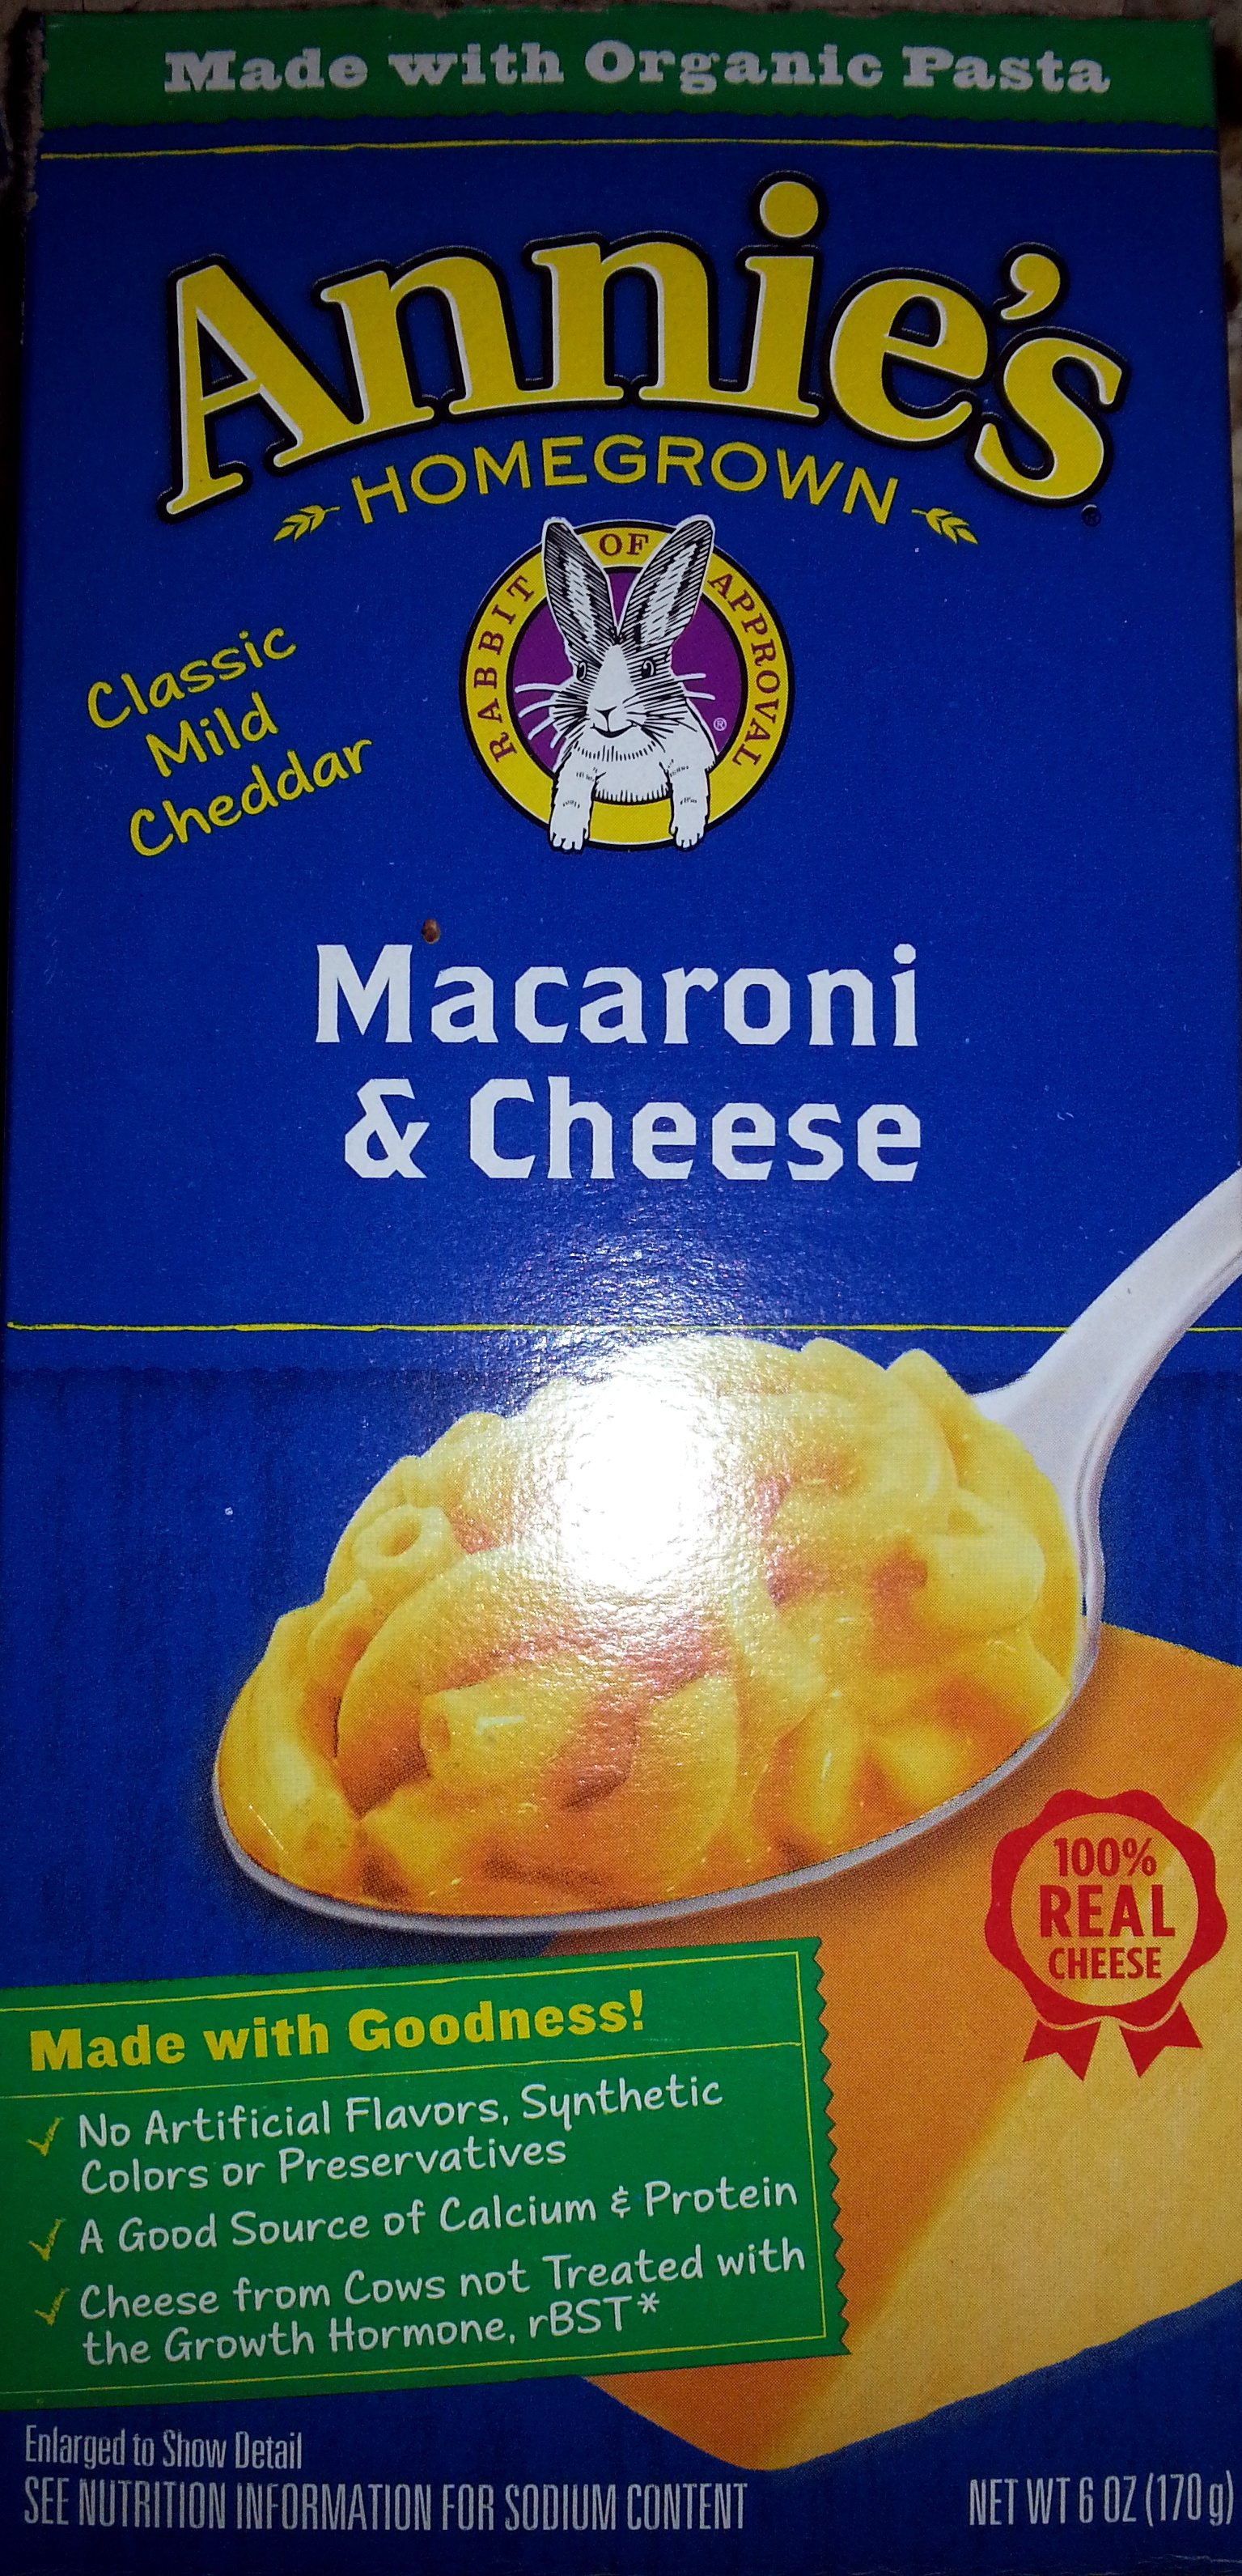 Annie's Classic Cheddar Macaroni & Cheese - Product - en